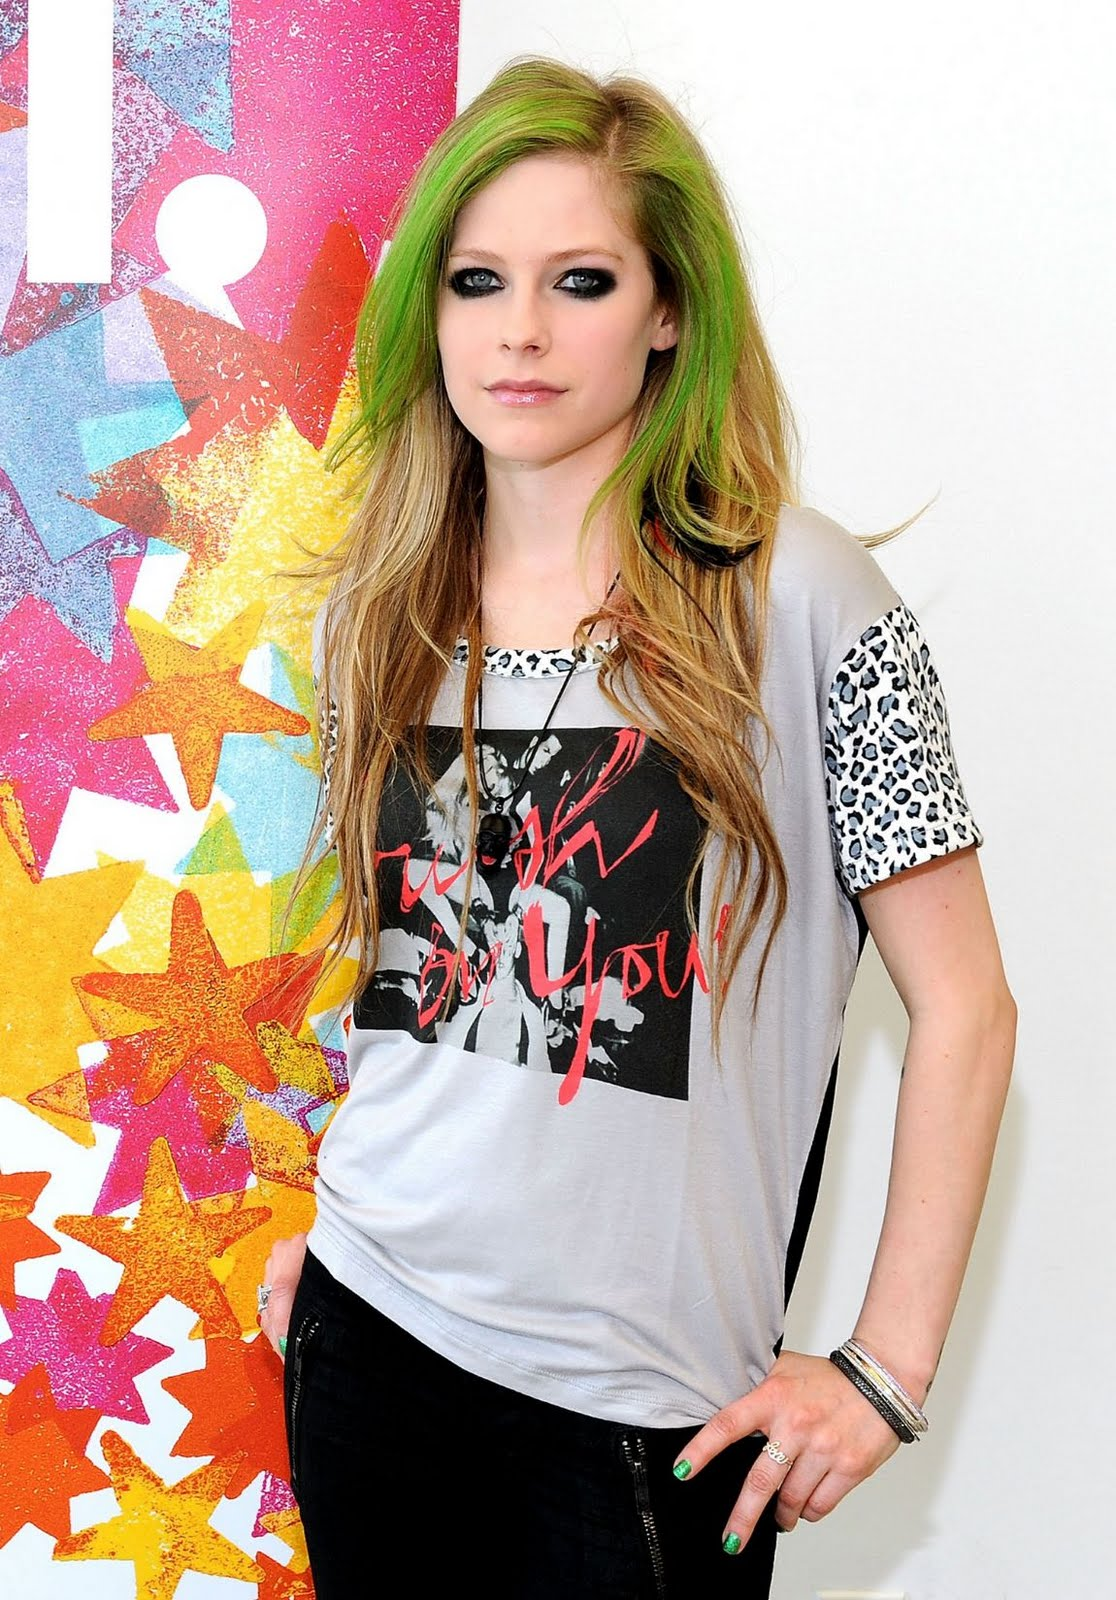 http://2.bp.blogspot.com/-614f-wfmg1U/Te7qiXcOpWI/AAAAAAAAKns/_7sSDmUMma4/s1600/avril-lavigne-aol-music%25E2%2580%2599s-sessions-photo-shoot-2011+%25284%2529.jpg